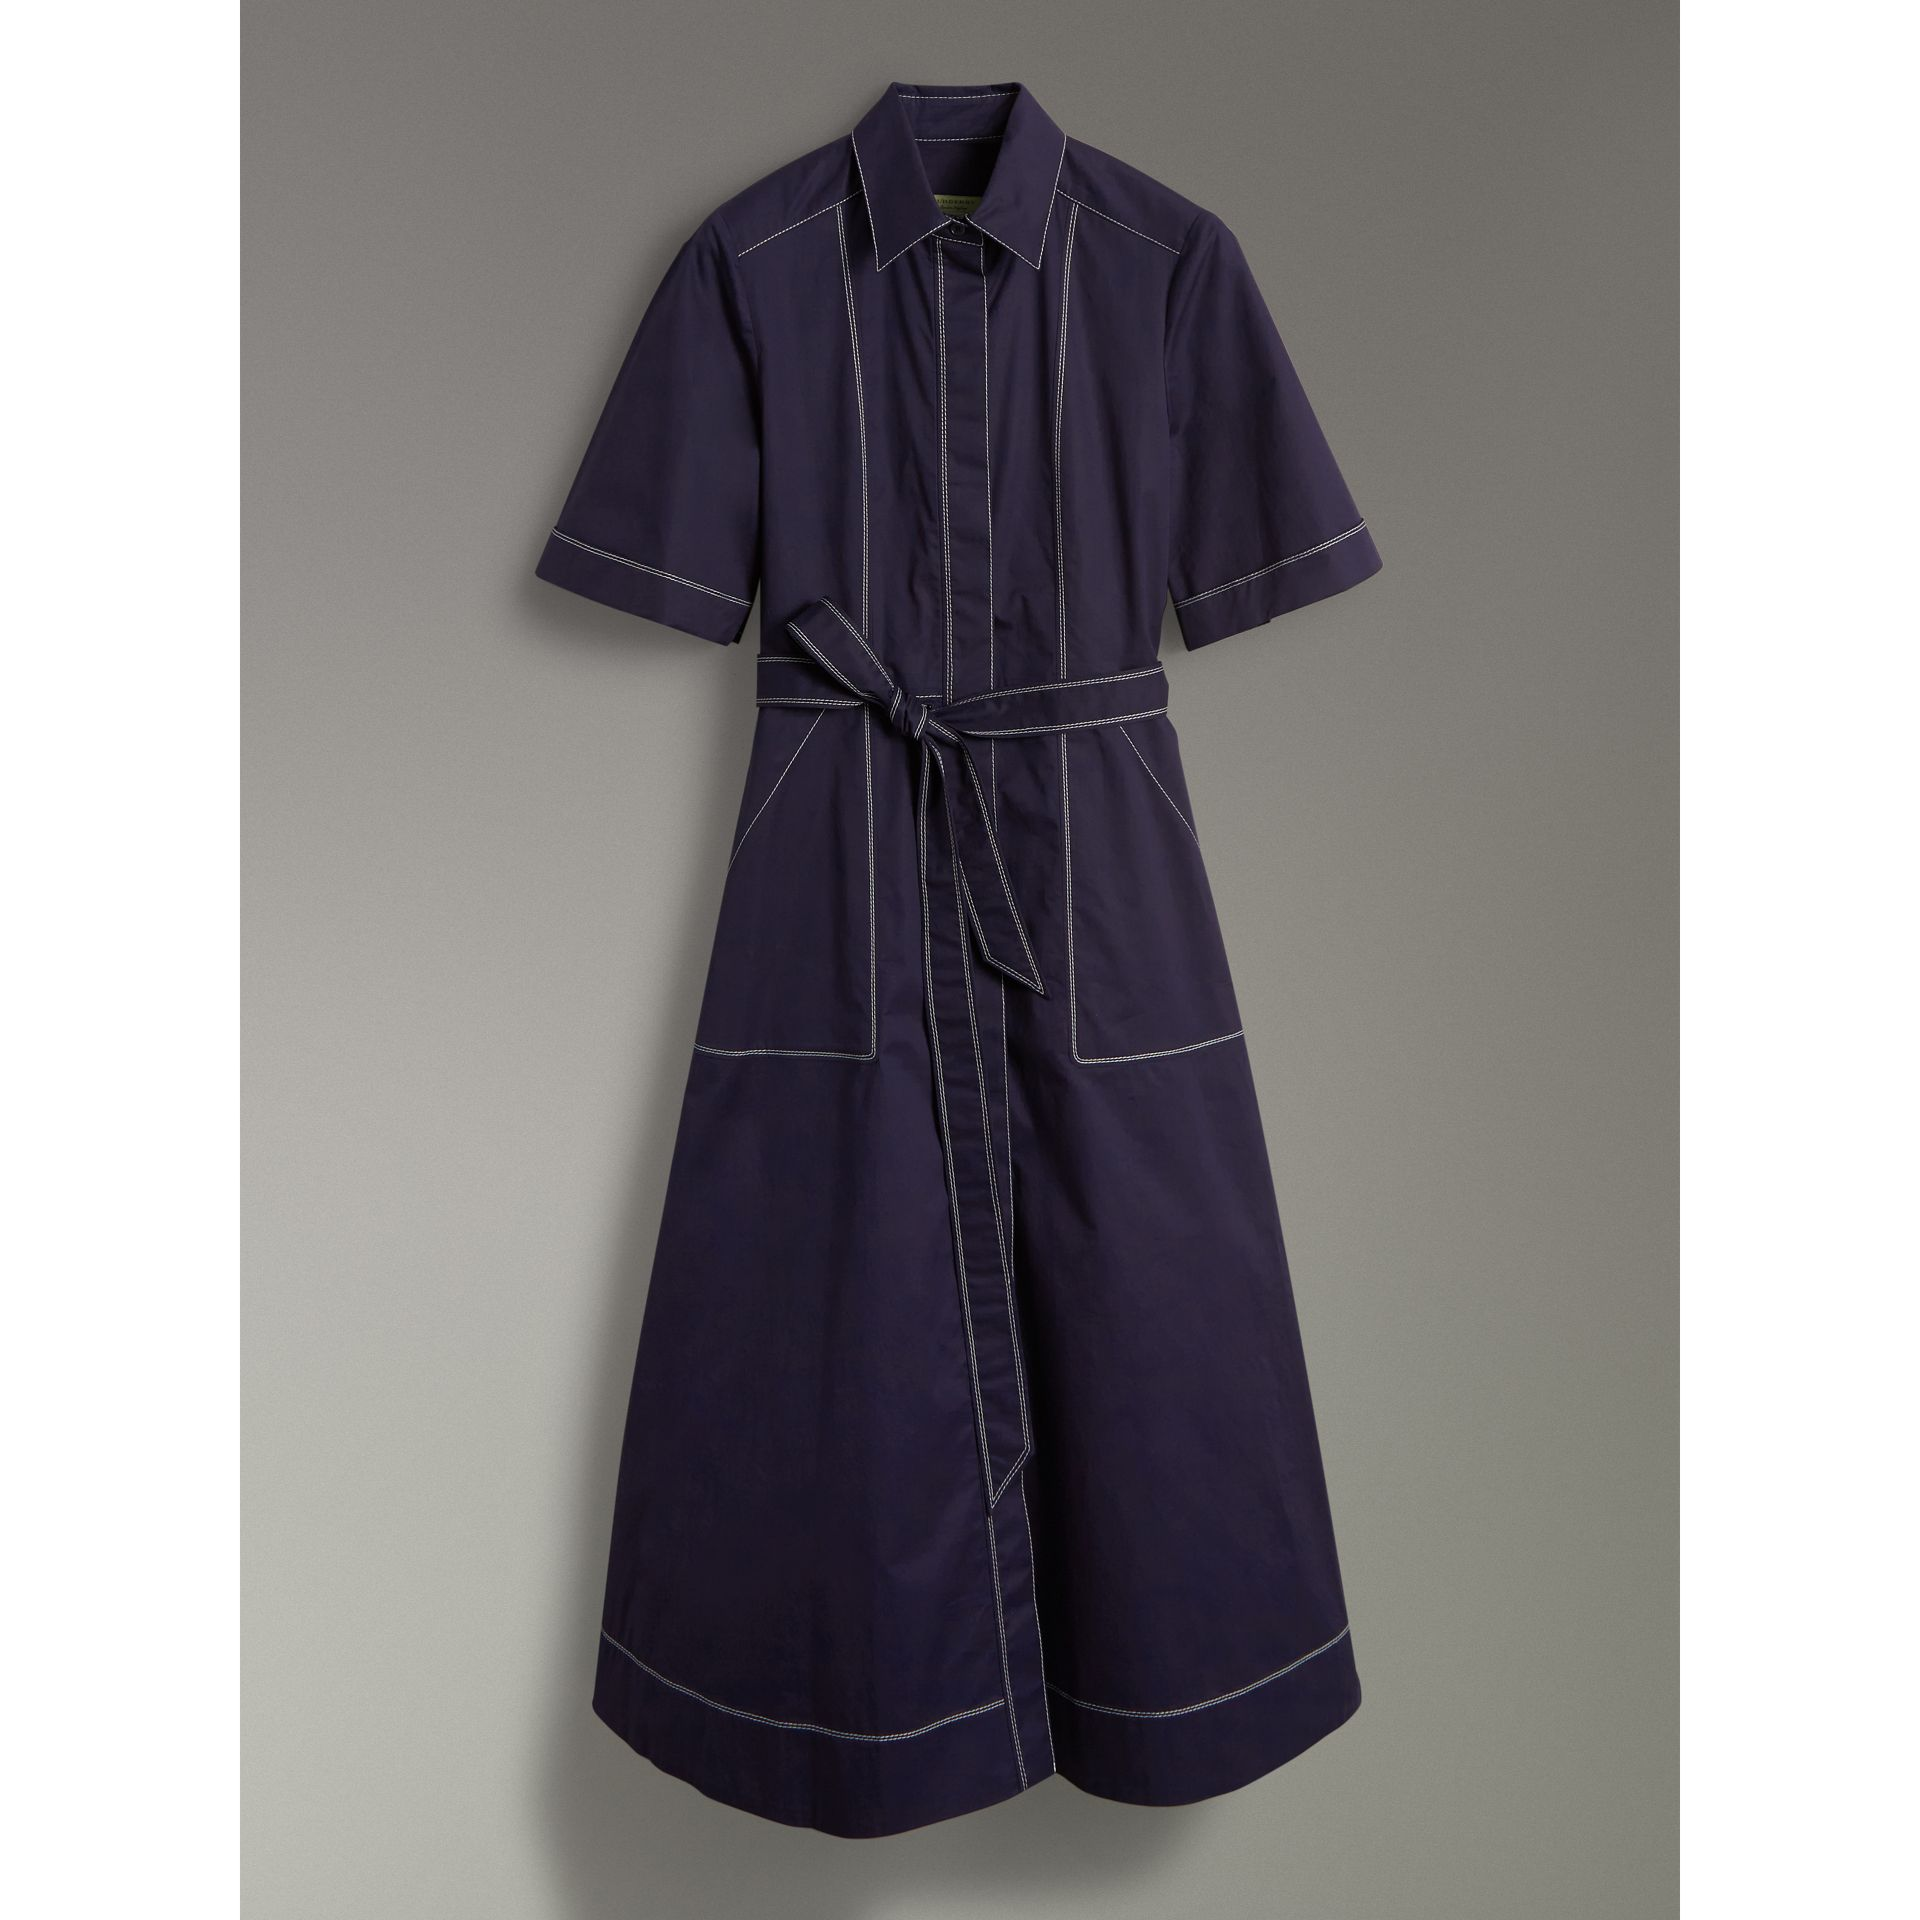 Topstitch Detail Stretch Cotton Dress in Navy - Women | Burberry Canada - gallery image 3